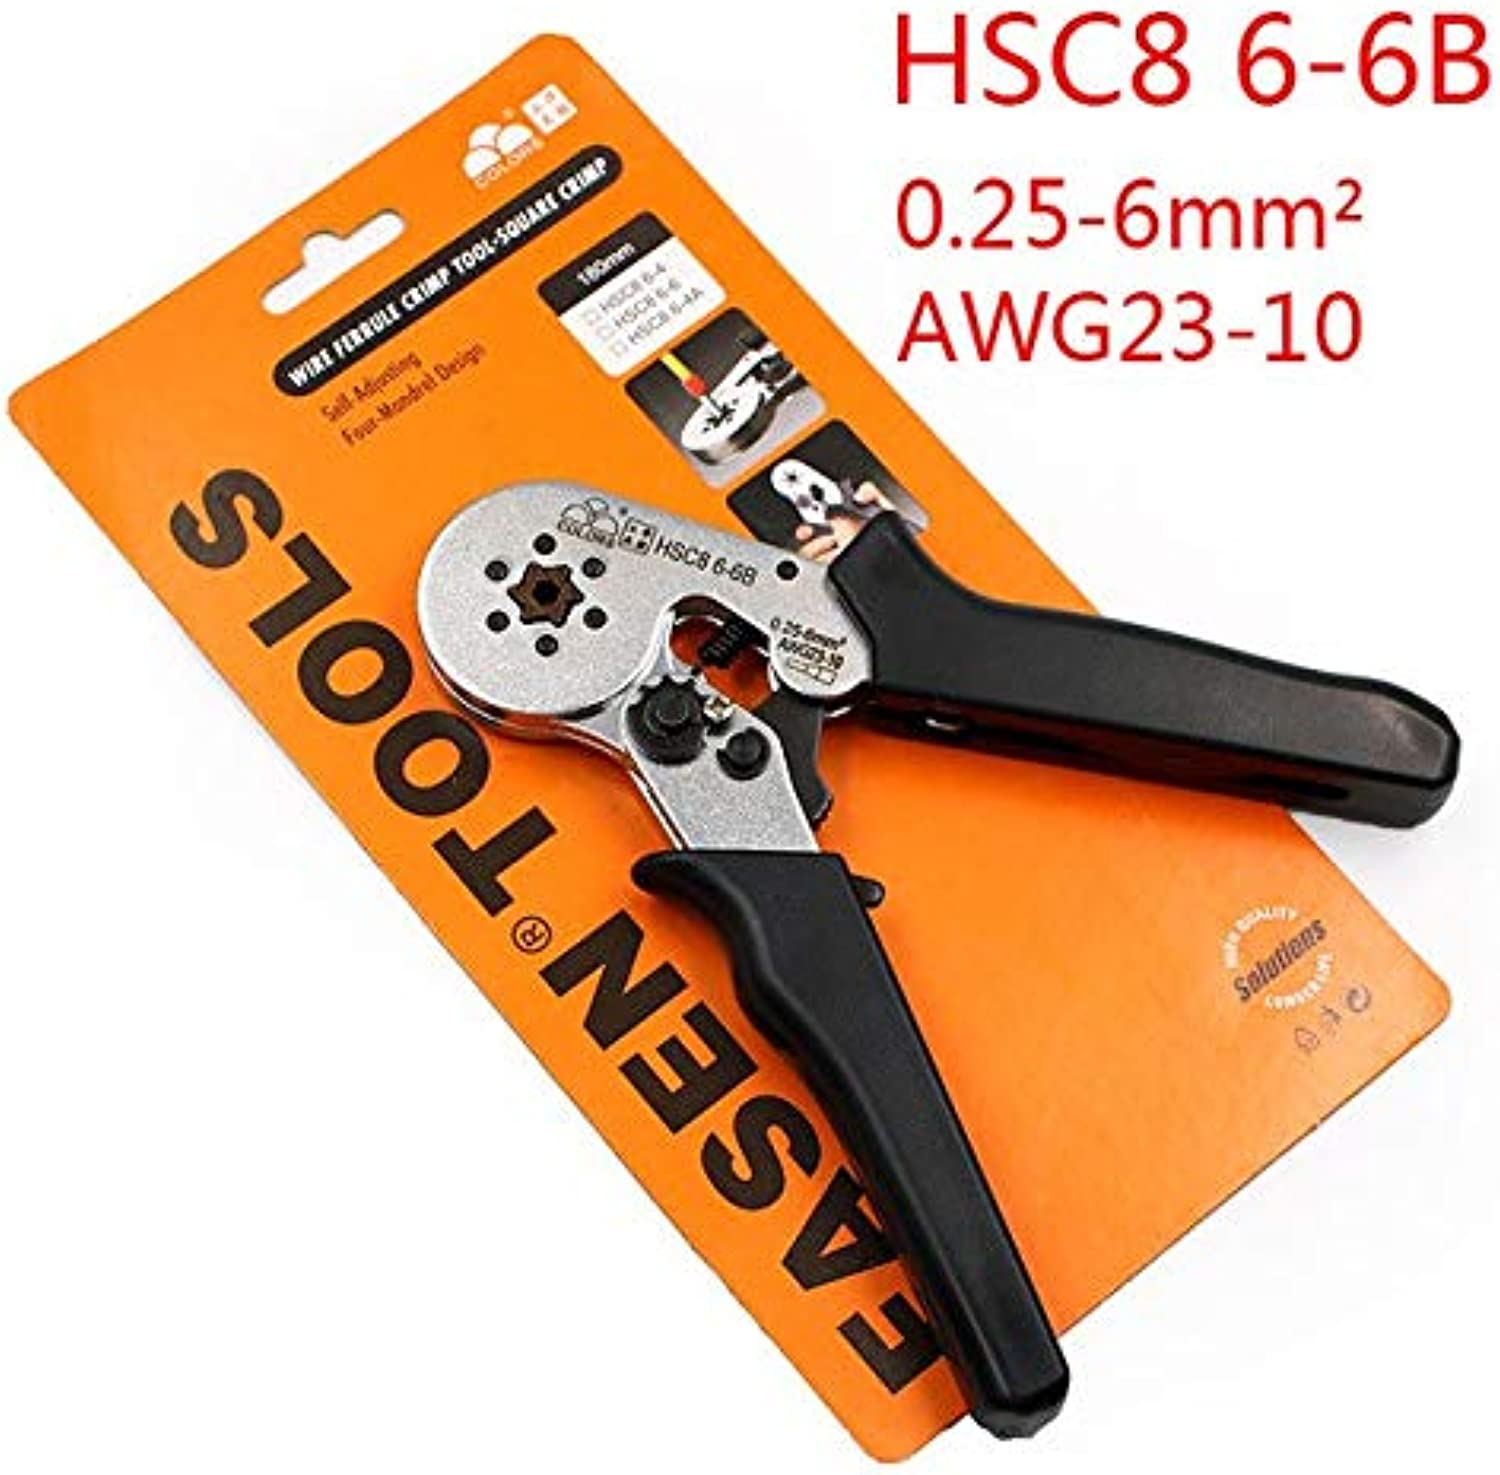 HSC8 6-6 0.25-6mm 23-10AWG Adjustable Hexagon Tube Bootlace VE Terminal Connectors Crimping Pliers Crimp Hand Tools Ferramentas   B